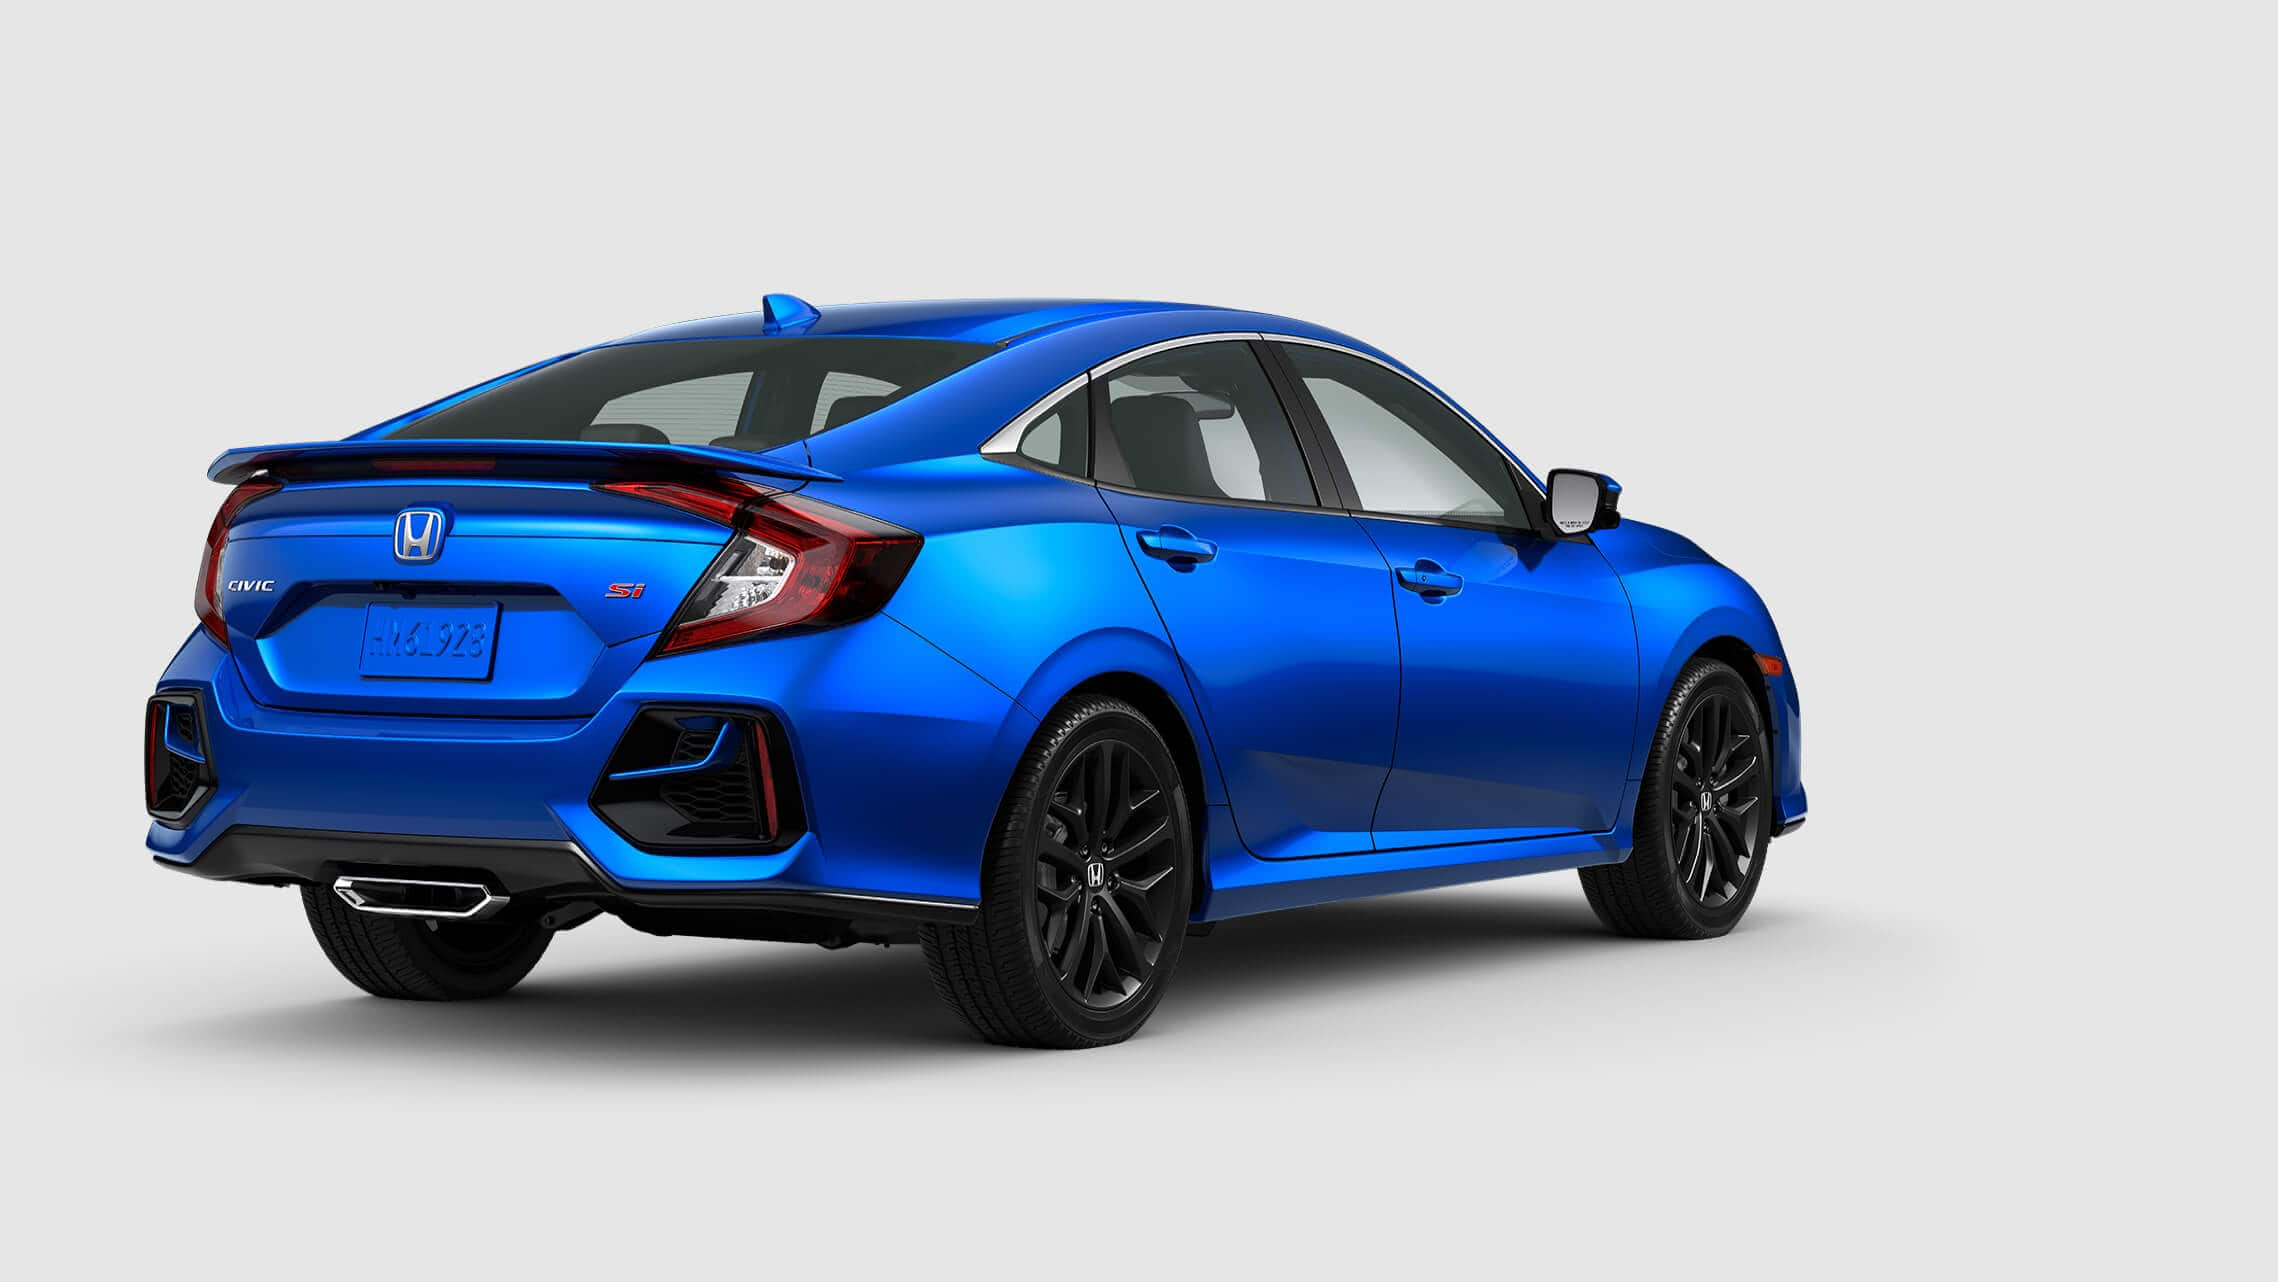 Rear view of 2020 Honda Civic Si Sedan in Aegean Blue Metallic.